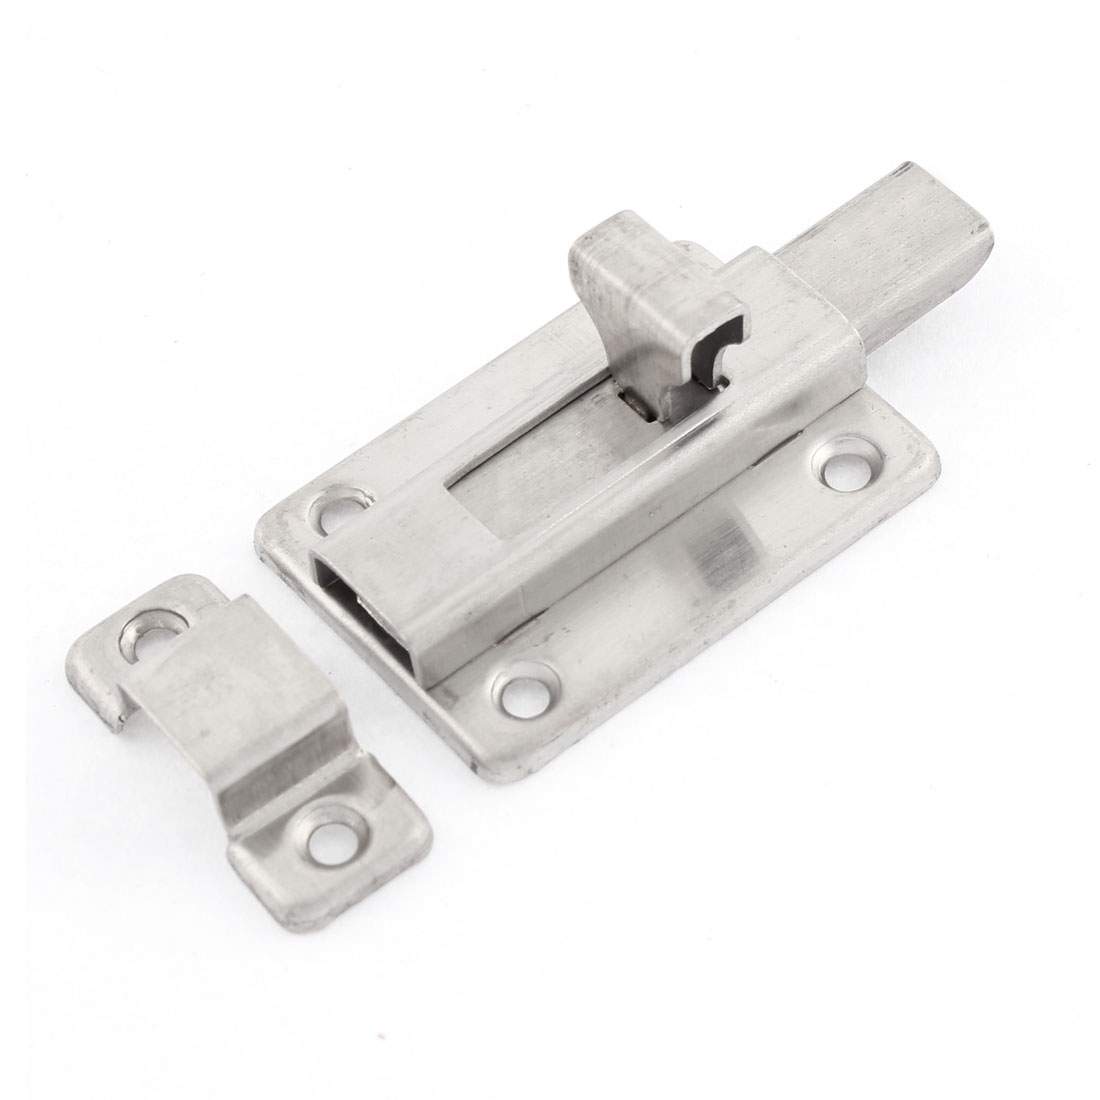 Door Latch And Handle Several Types Of To  sc 1 st  Tin Fish & Door Latch Lock - Photos Wall and Door Tinfishclematis.Com